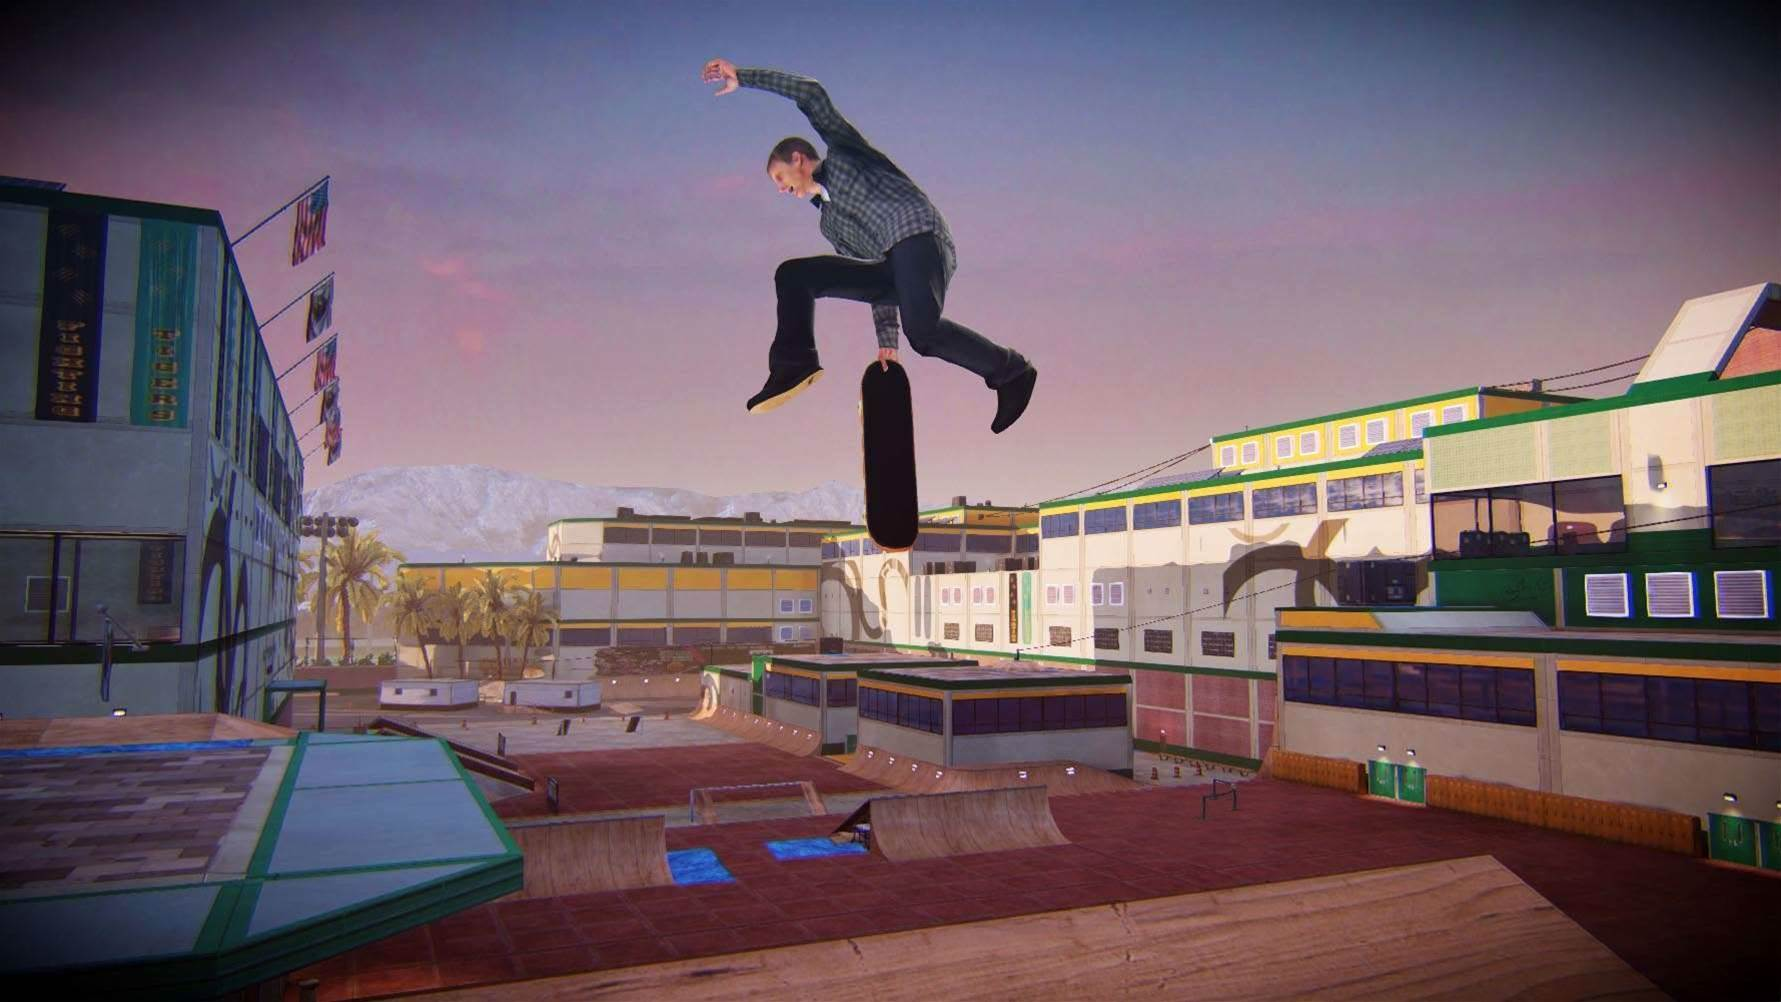 Review: Tony Hawk's Pro Skater 5